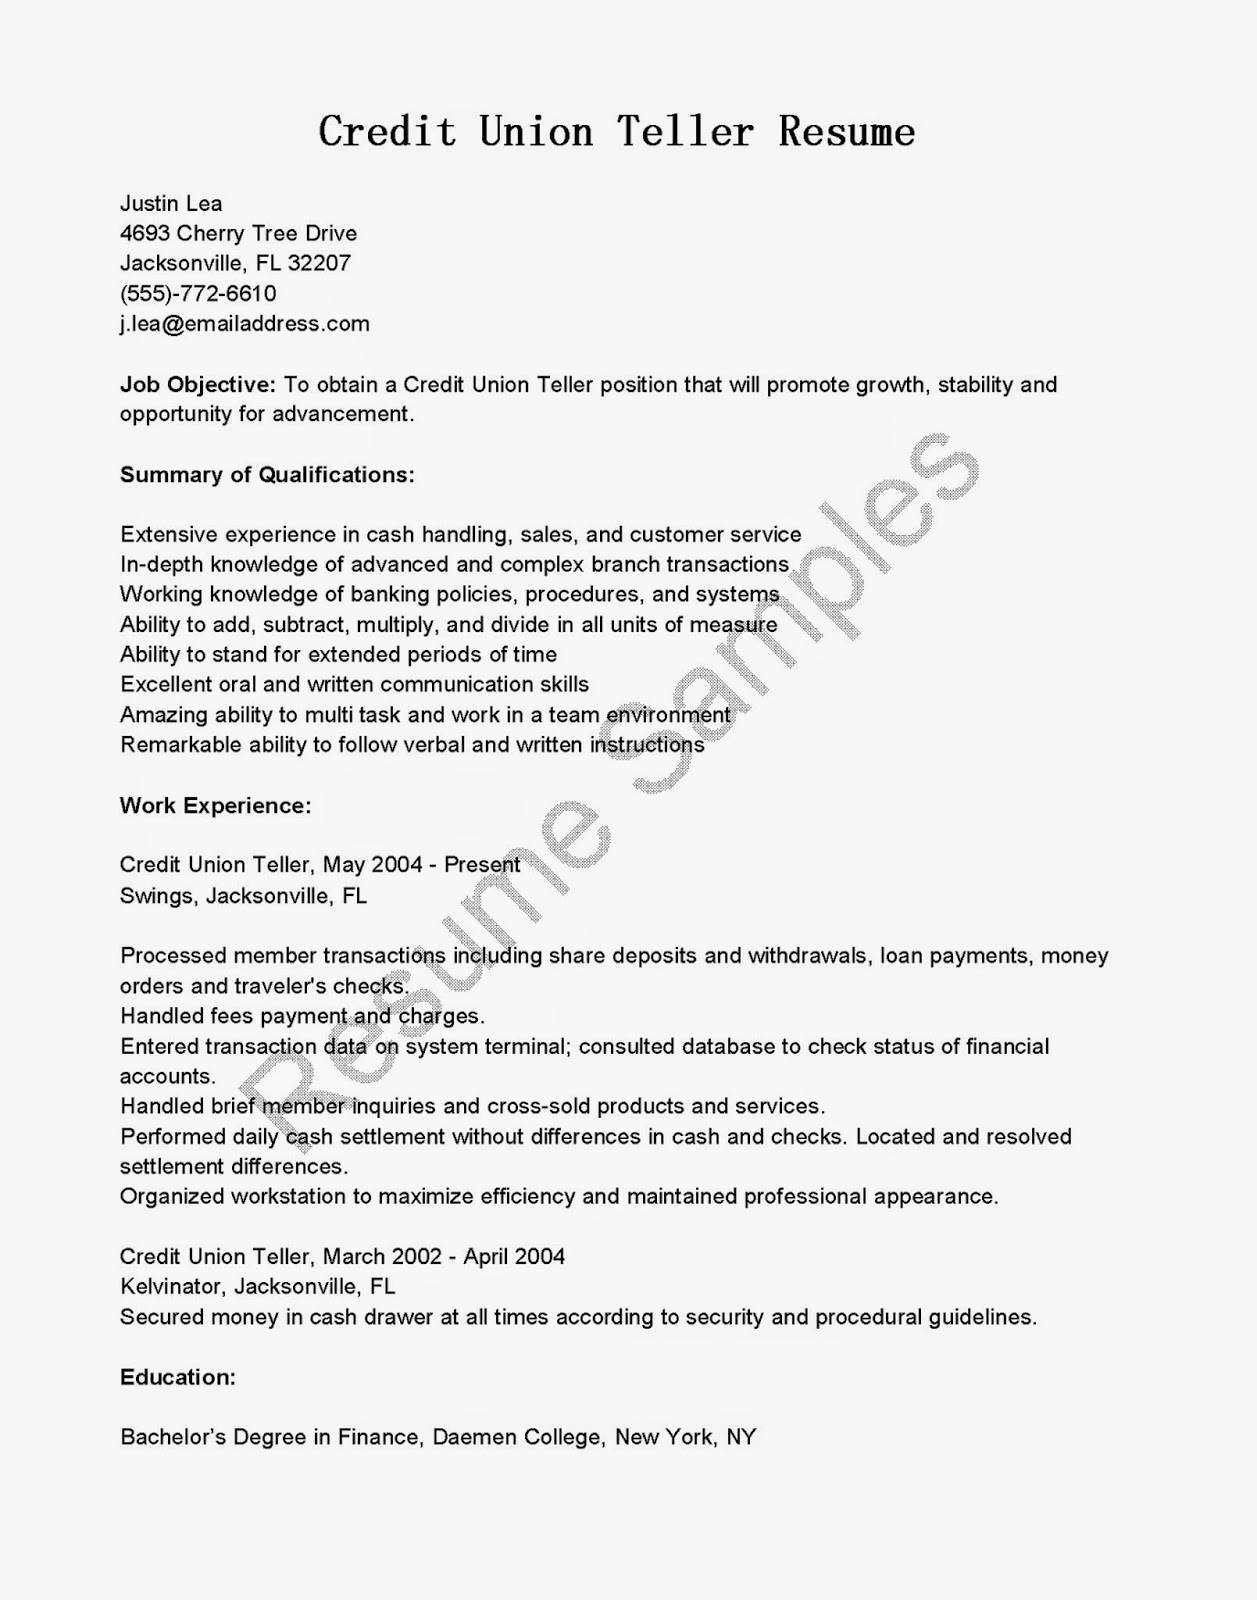 Cover Letter For Credit Union Teller Position